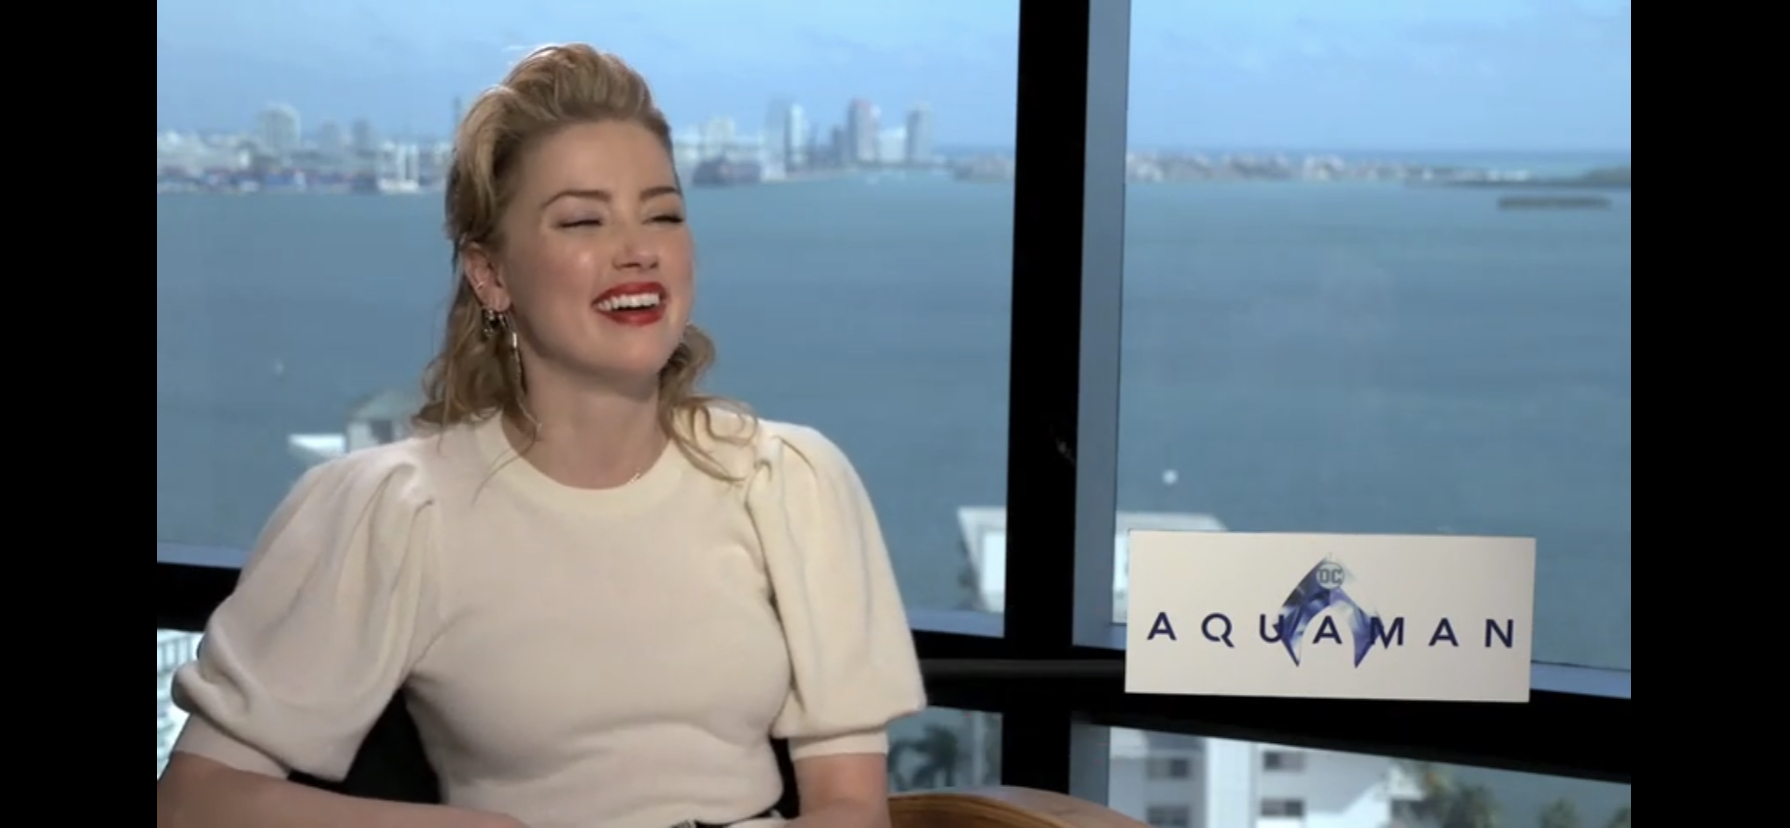 Aquaman Interview With Amber Heard